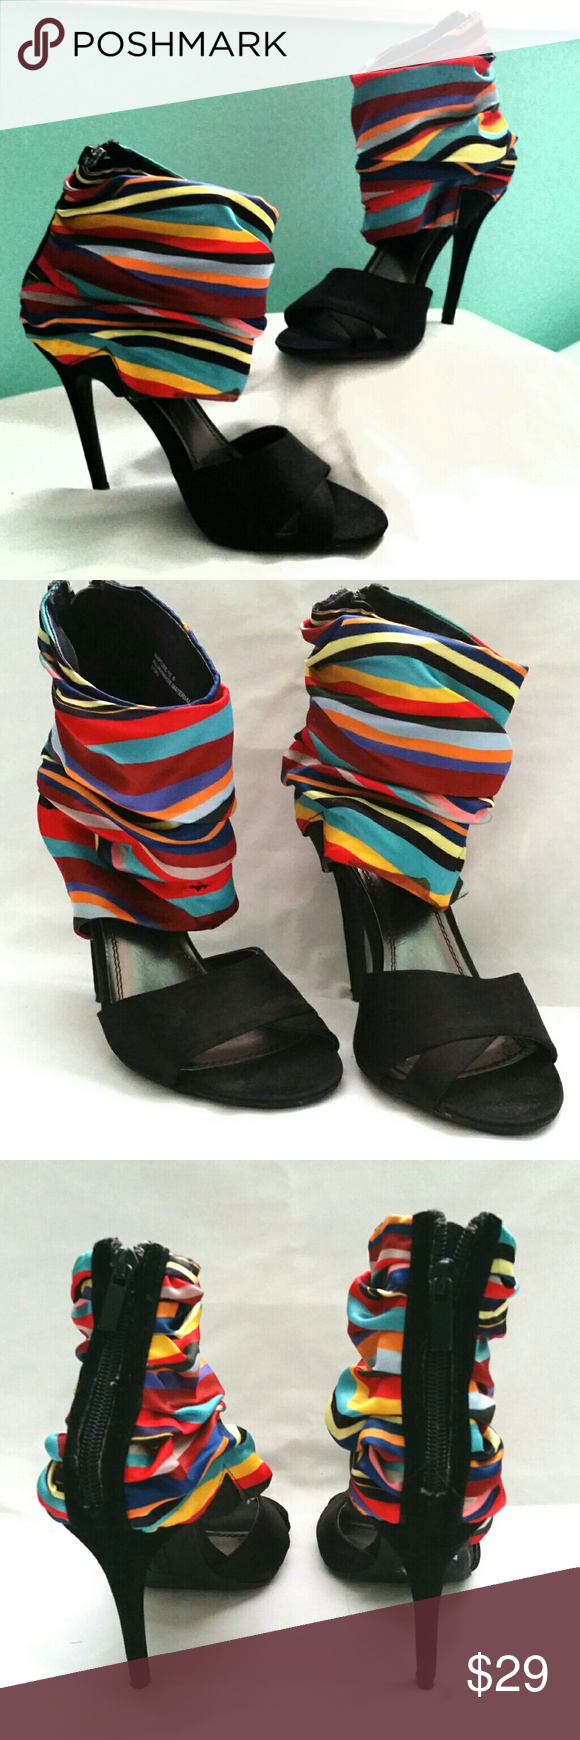 Multicolor Cuff Ankle Heels This multicolor Cuff heel makes it easy to match with any outfit. Super stylish and comfortable. There is a slight scuff on the insides of one of the heels but very minimal as shown in the picture. Also the bottom of one cuff has a stain but can he easily hidden by folding it under the cuff. Worn only a few times and still in great condition. Anne Michelle Shoes Heels